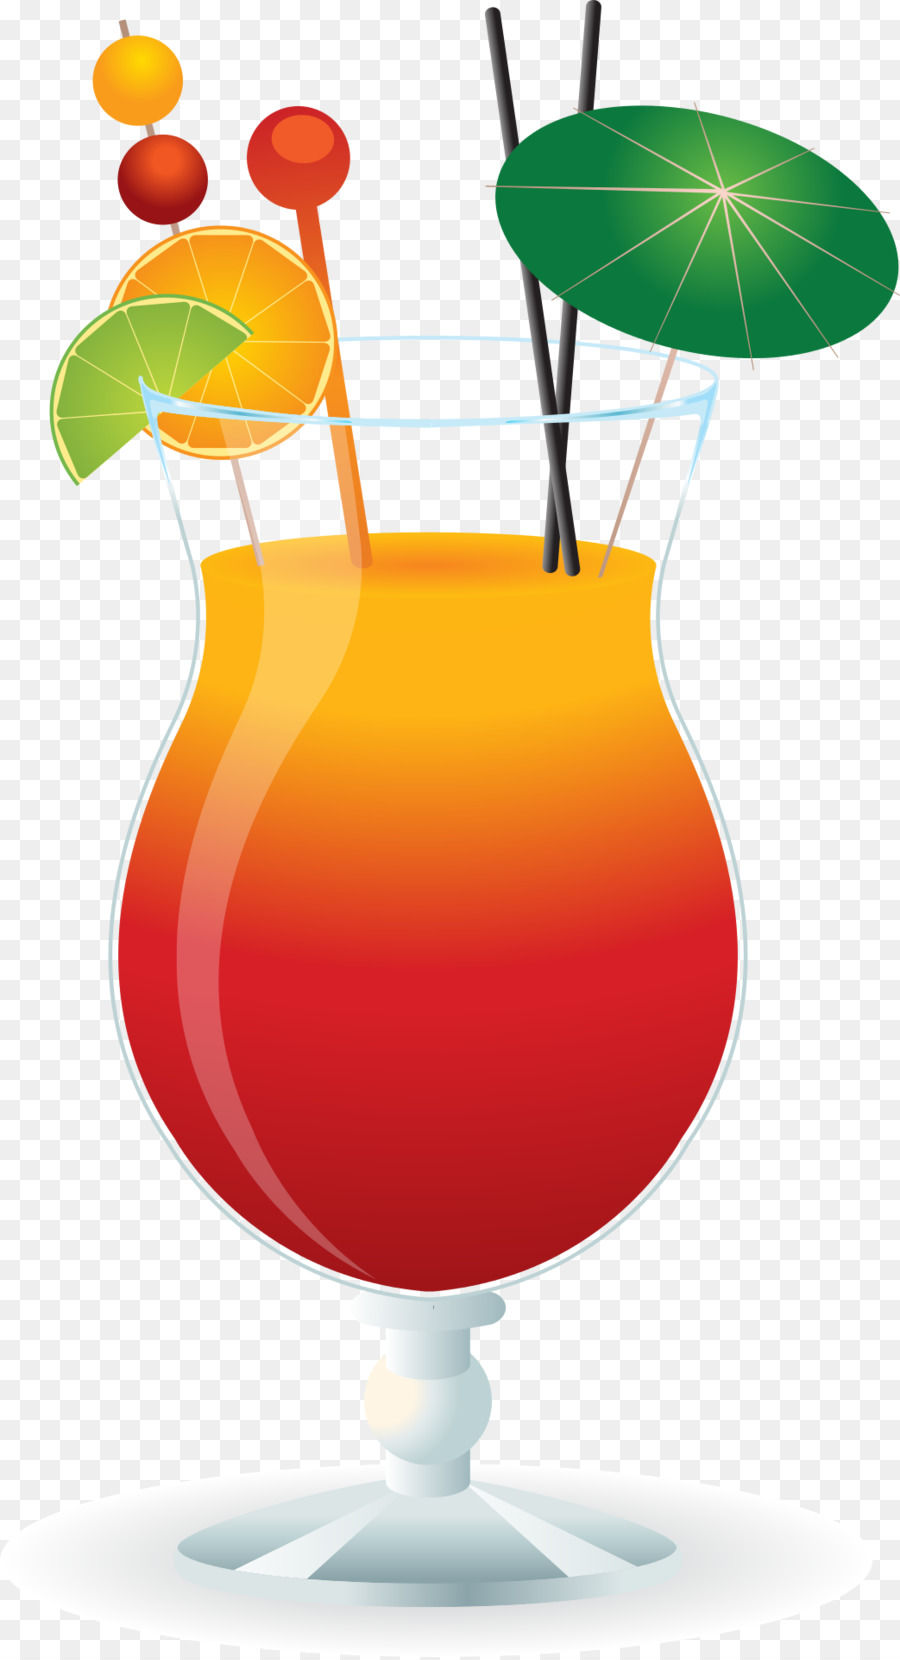 Cocktail margarita red russian. Cocktails clipart